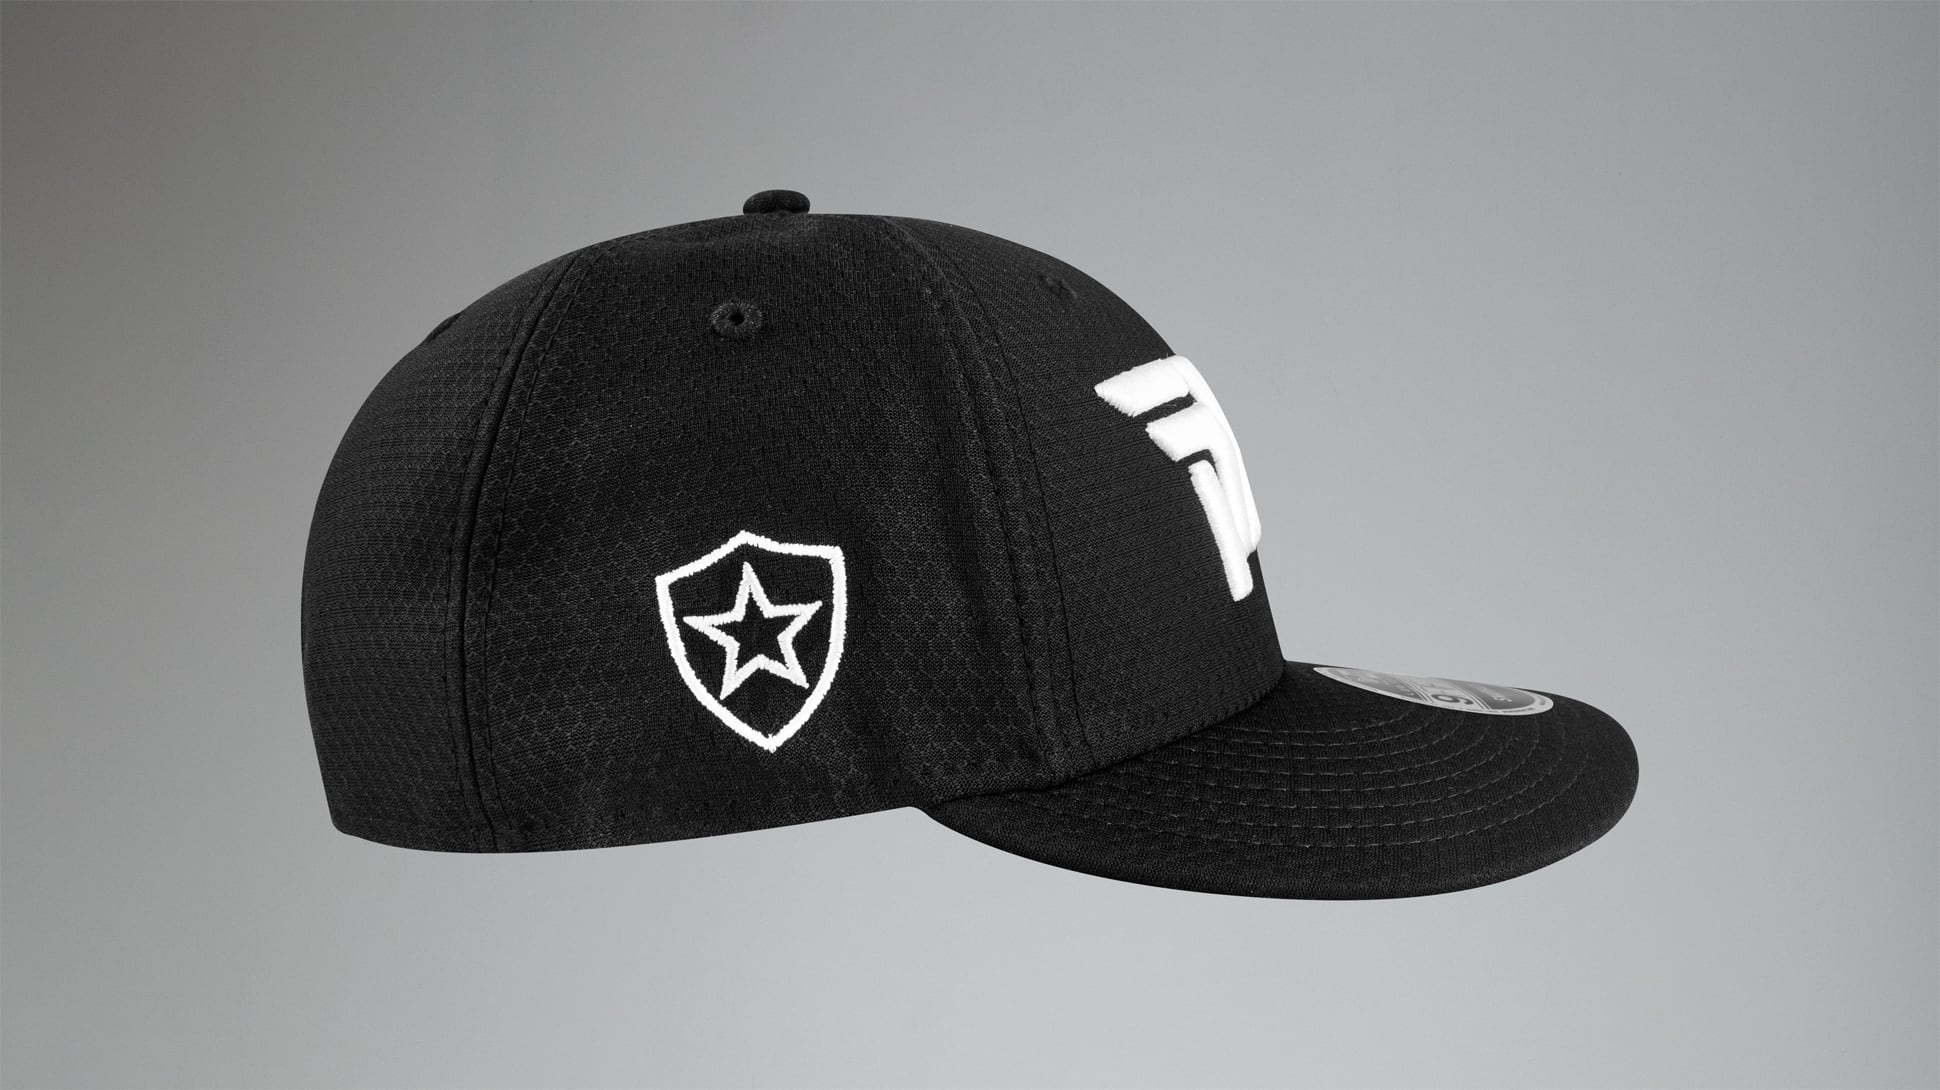 First Responders 9FIFTY Snapback Cap – Law Enforcement Image 4